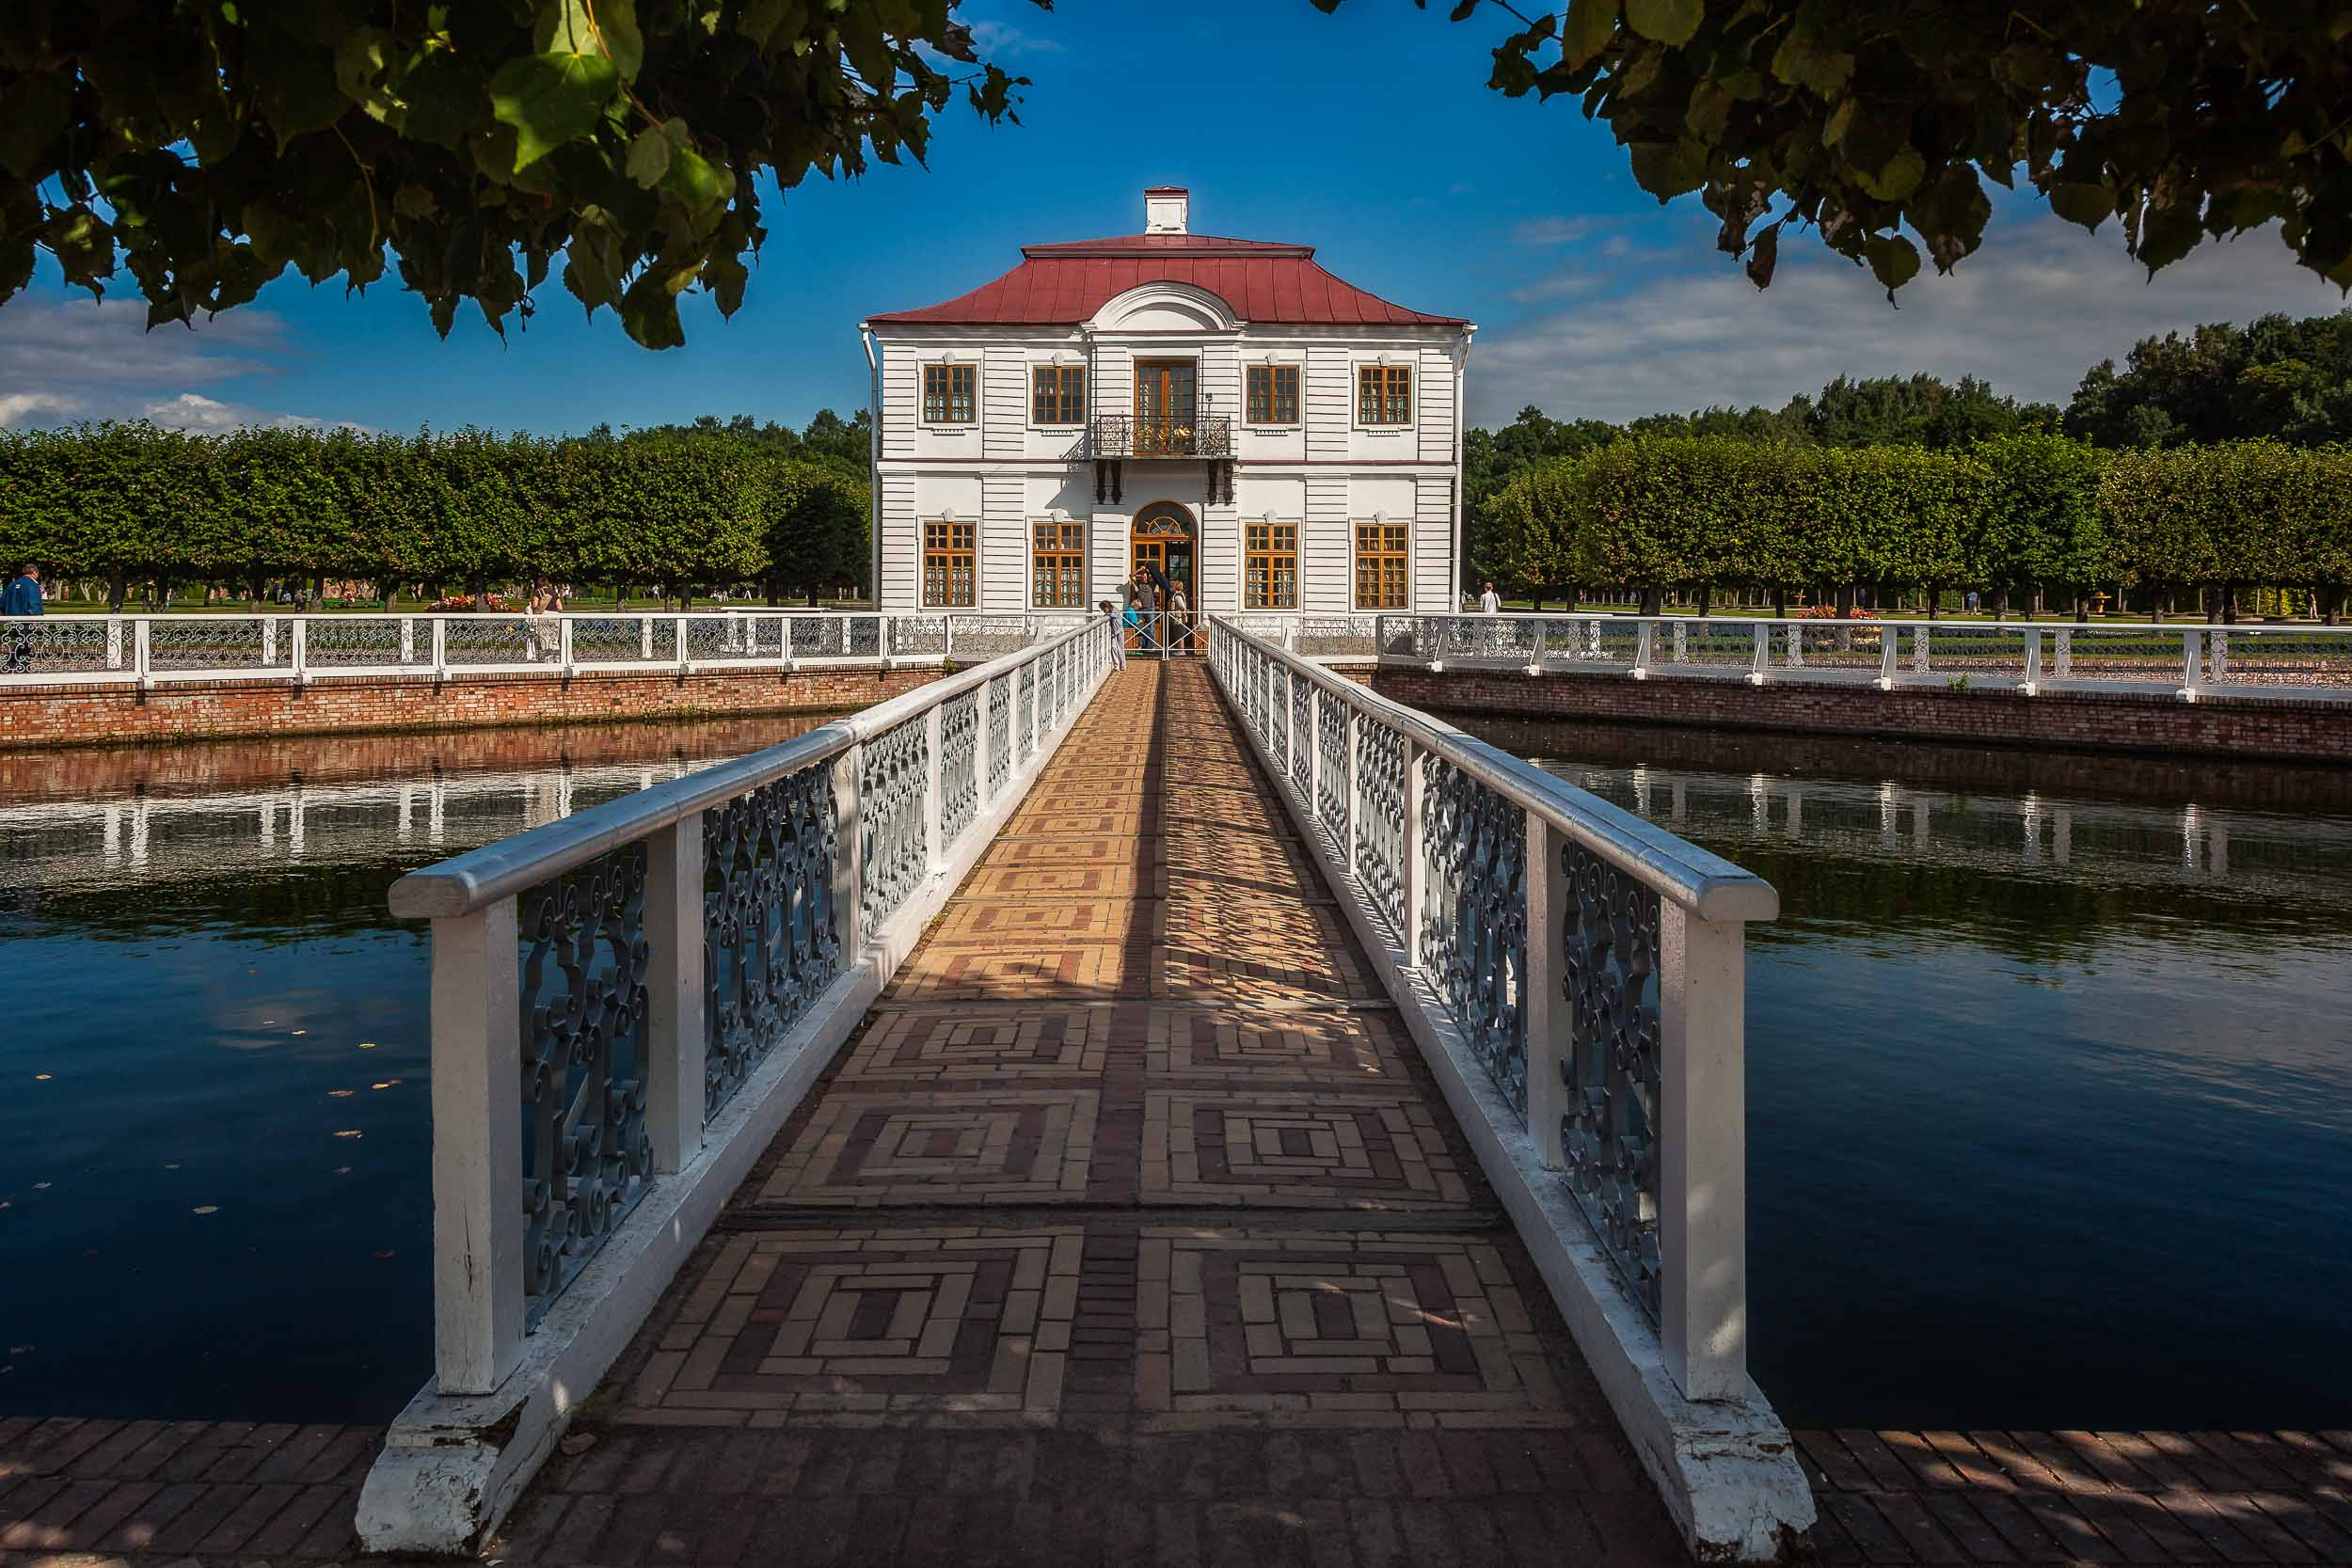 Marly Palace    was a lovely, quiet retreat for the former Tzar in the grounds of    Peterhof Summer Palace    near    St. Petersburg, Russia   .